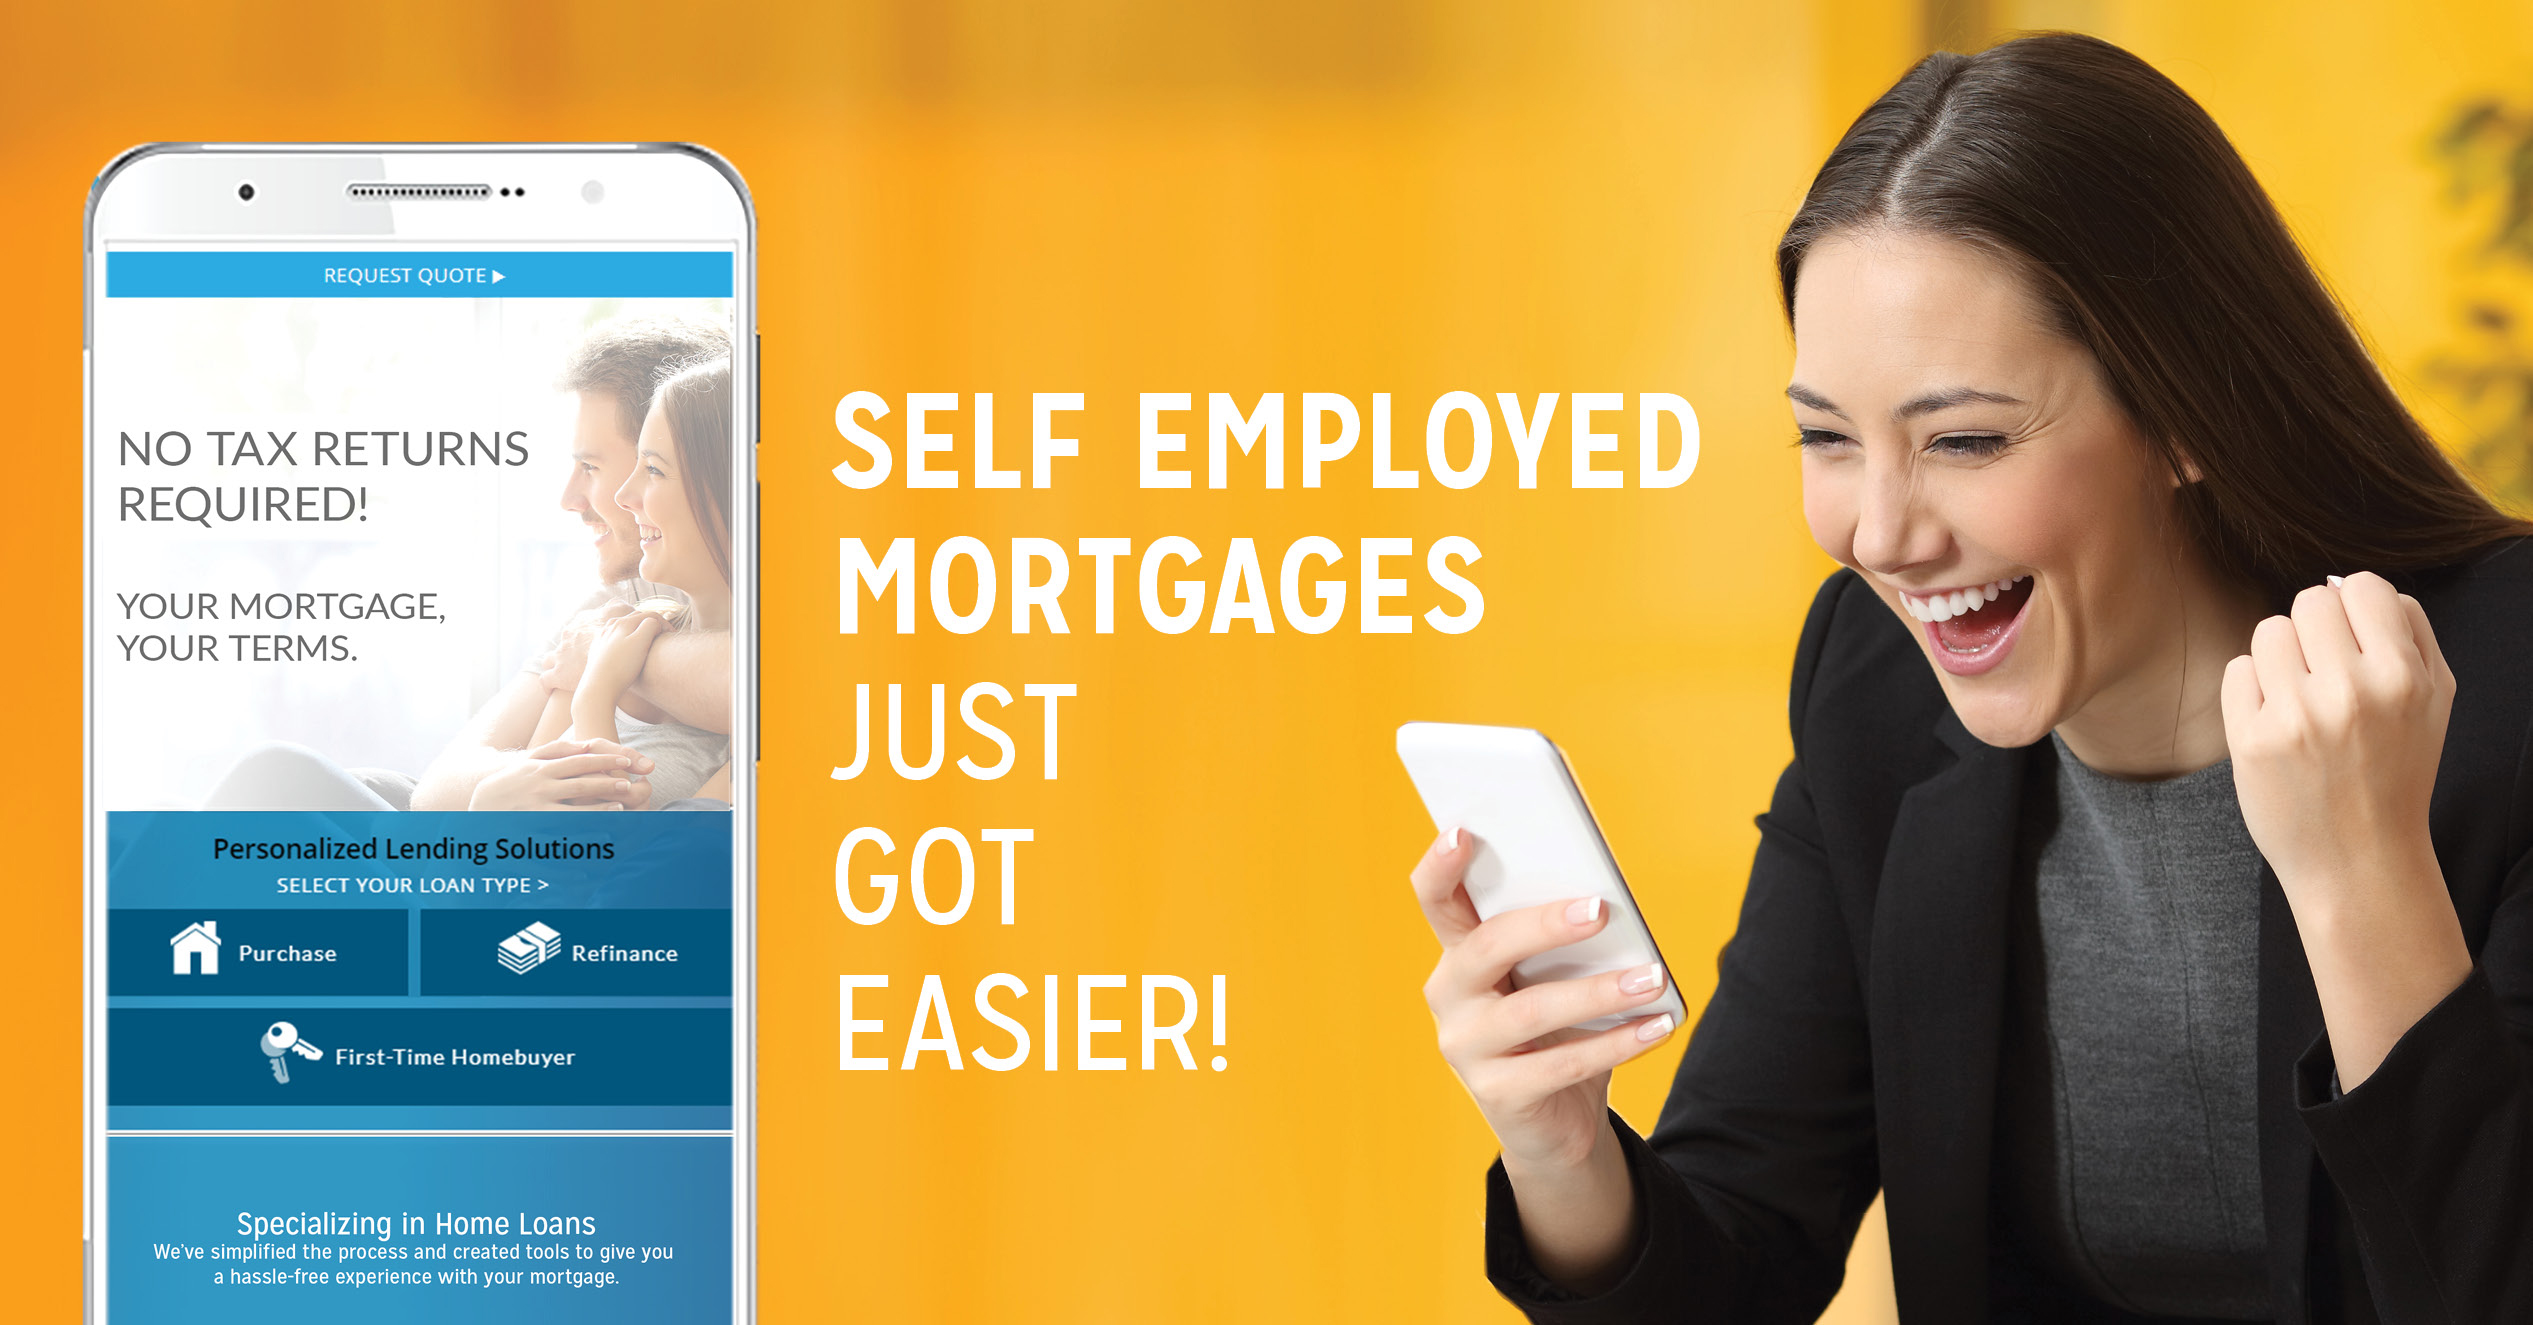 Woman looking at phone smiling. Text on image: Self employed mortgages just got easier!